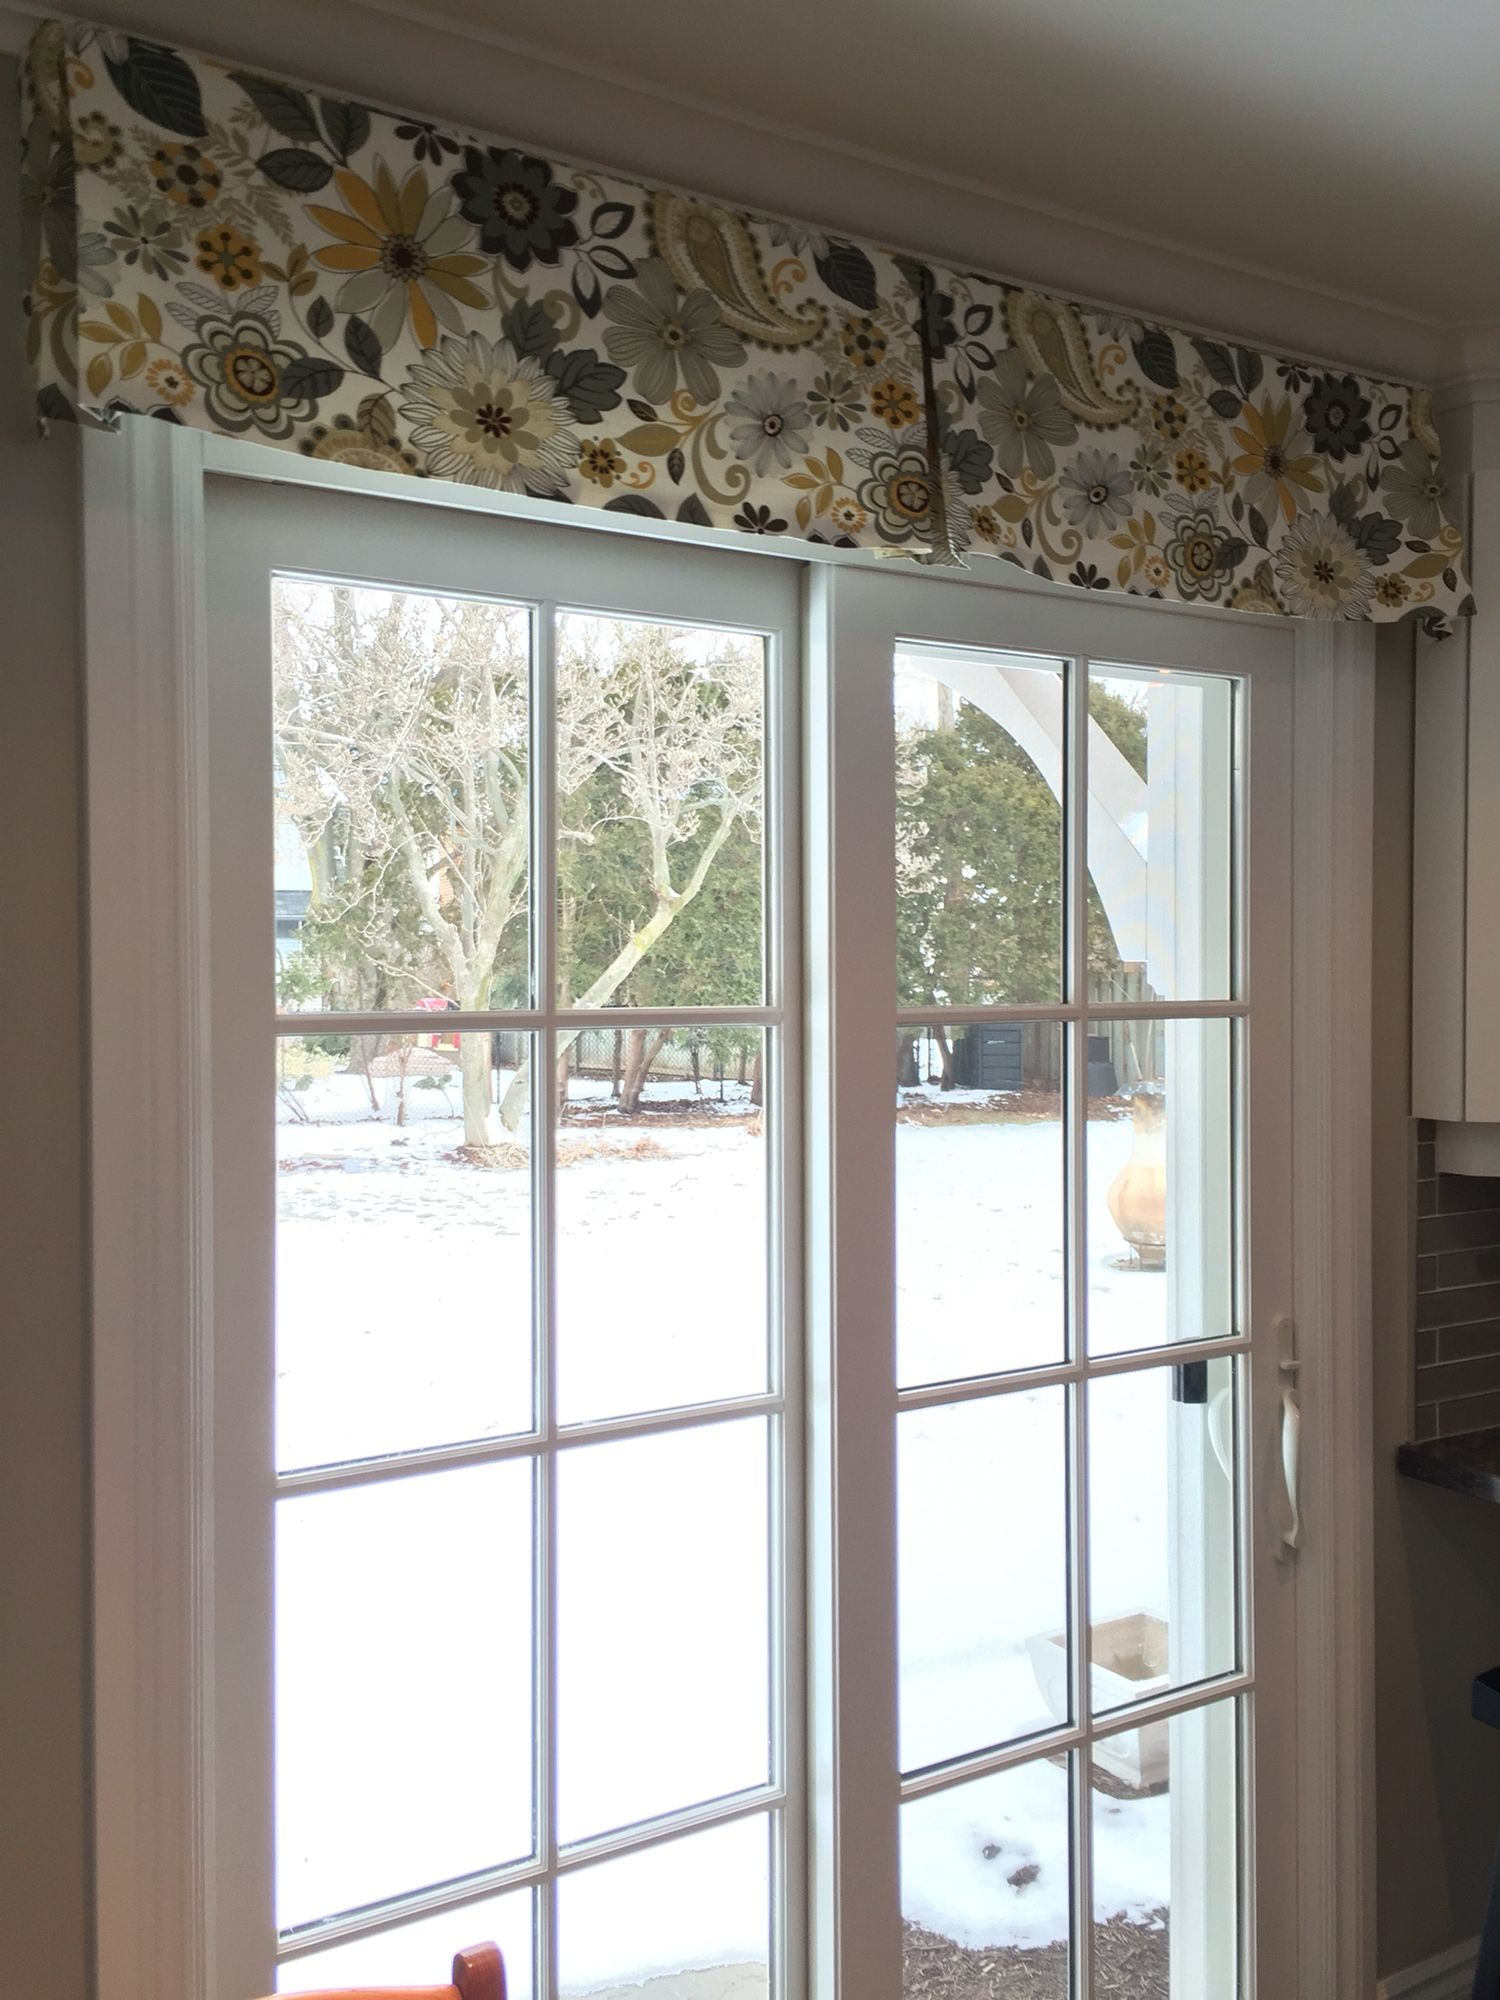 Sliding Door Valance Picture Decorative In 2019 Patio